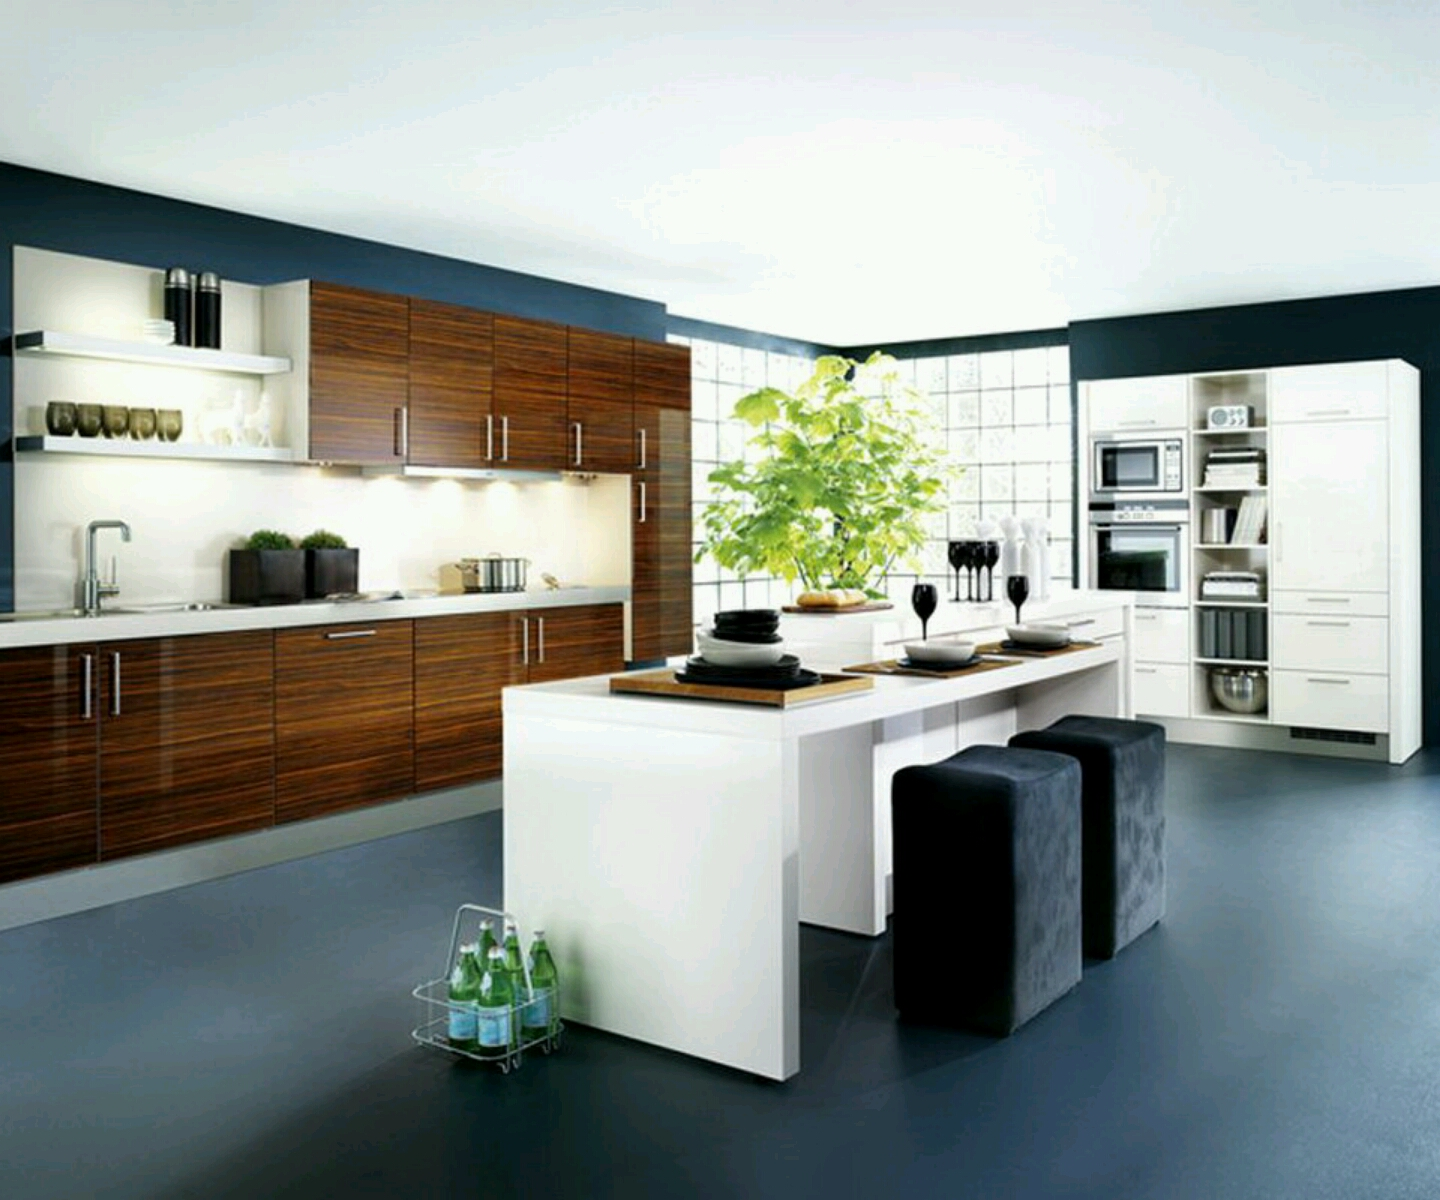 New home designs latest kitchen cabinets designs modern for New latest kitchen design